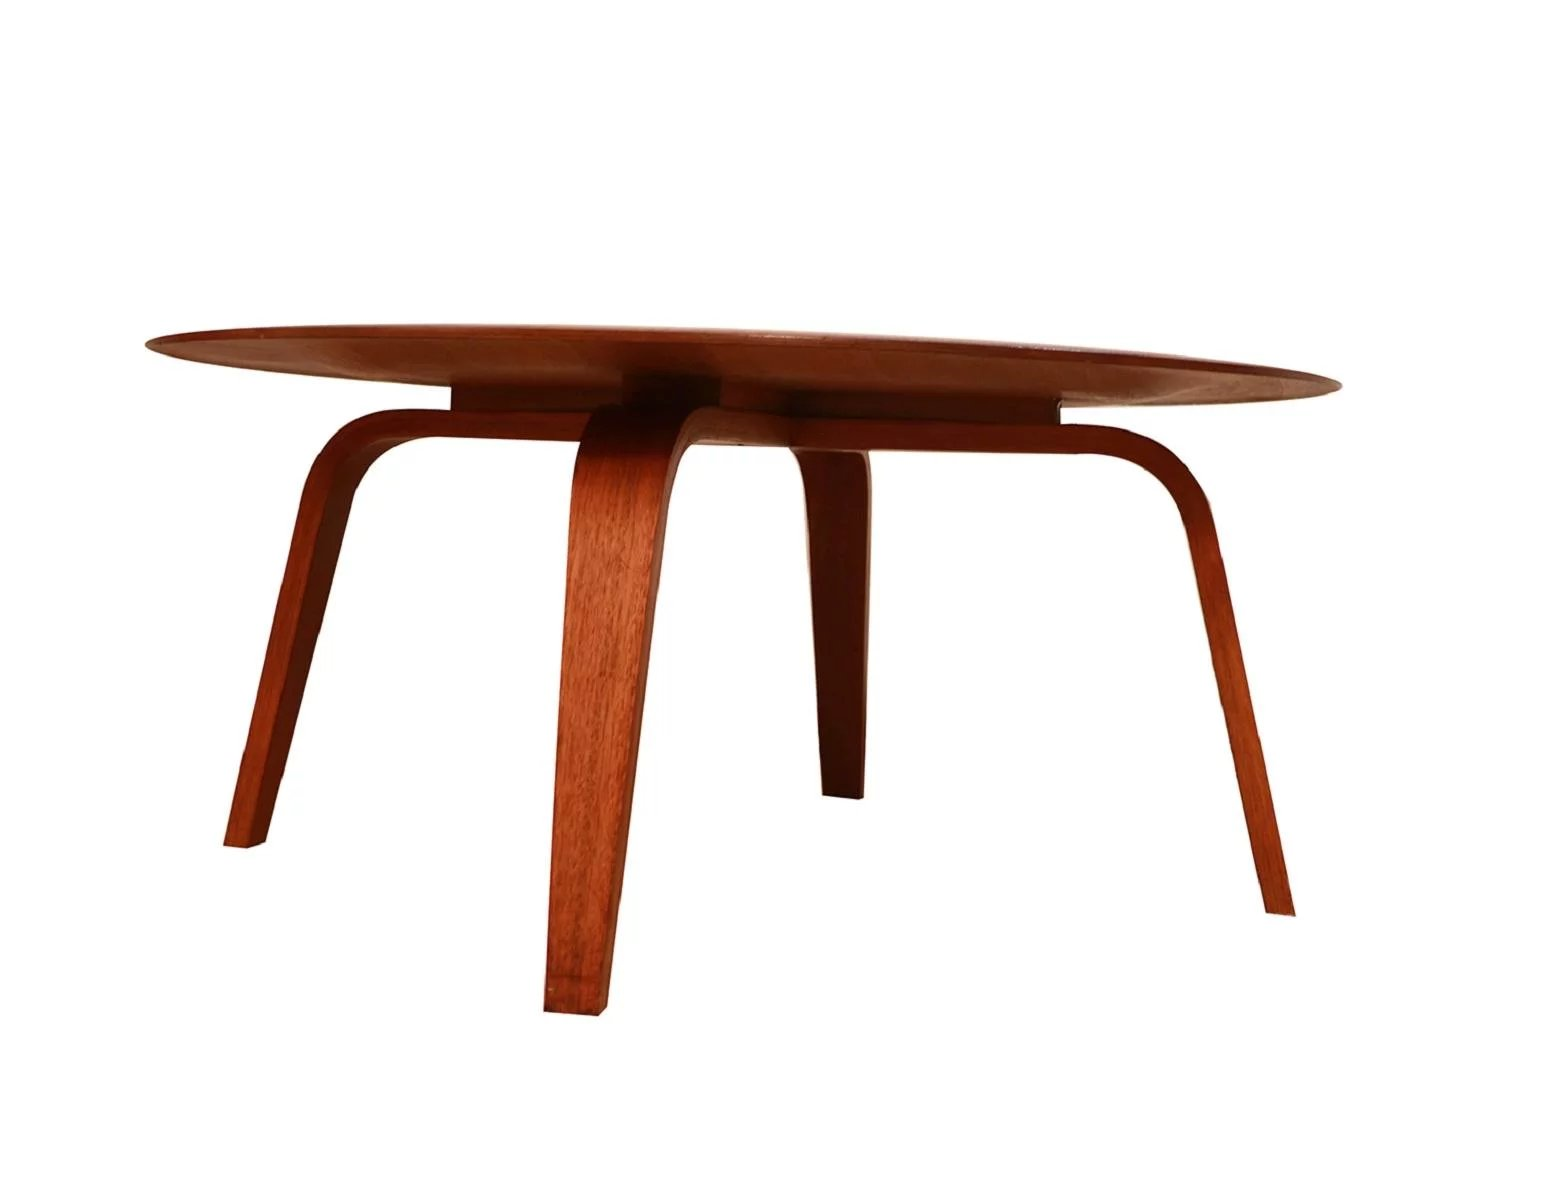 Charmant Charles Eames Molded Plywood CTW Coffee Table For Herman Miller. Click To  Expand